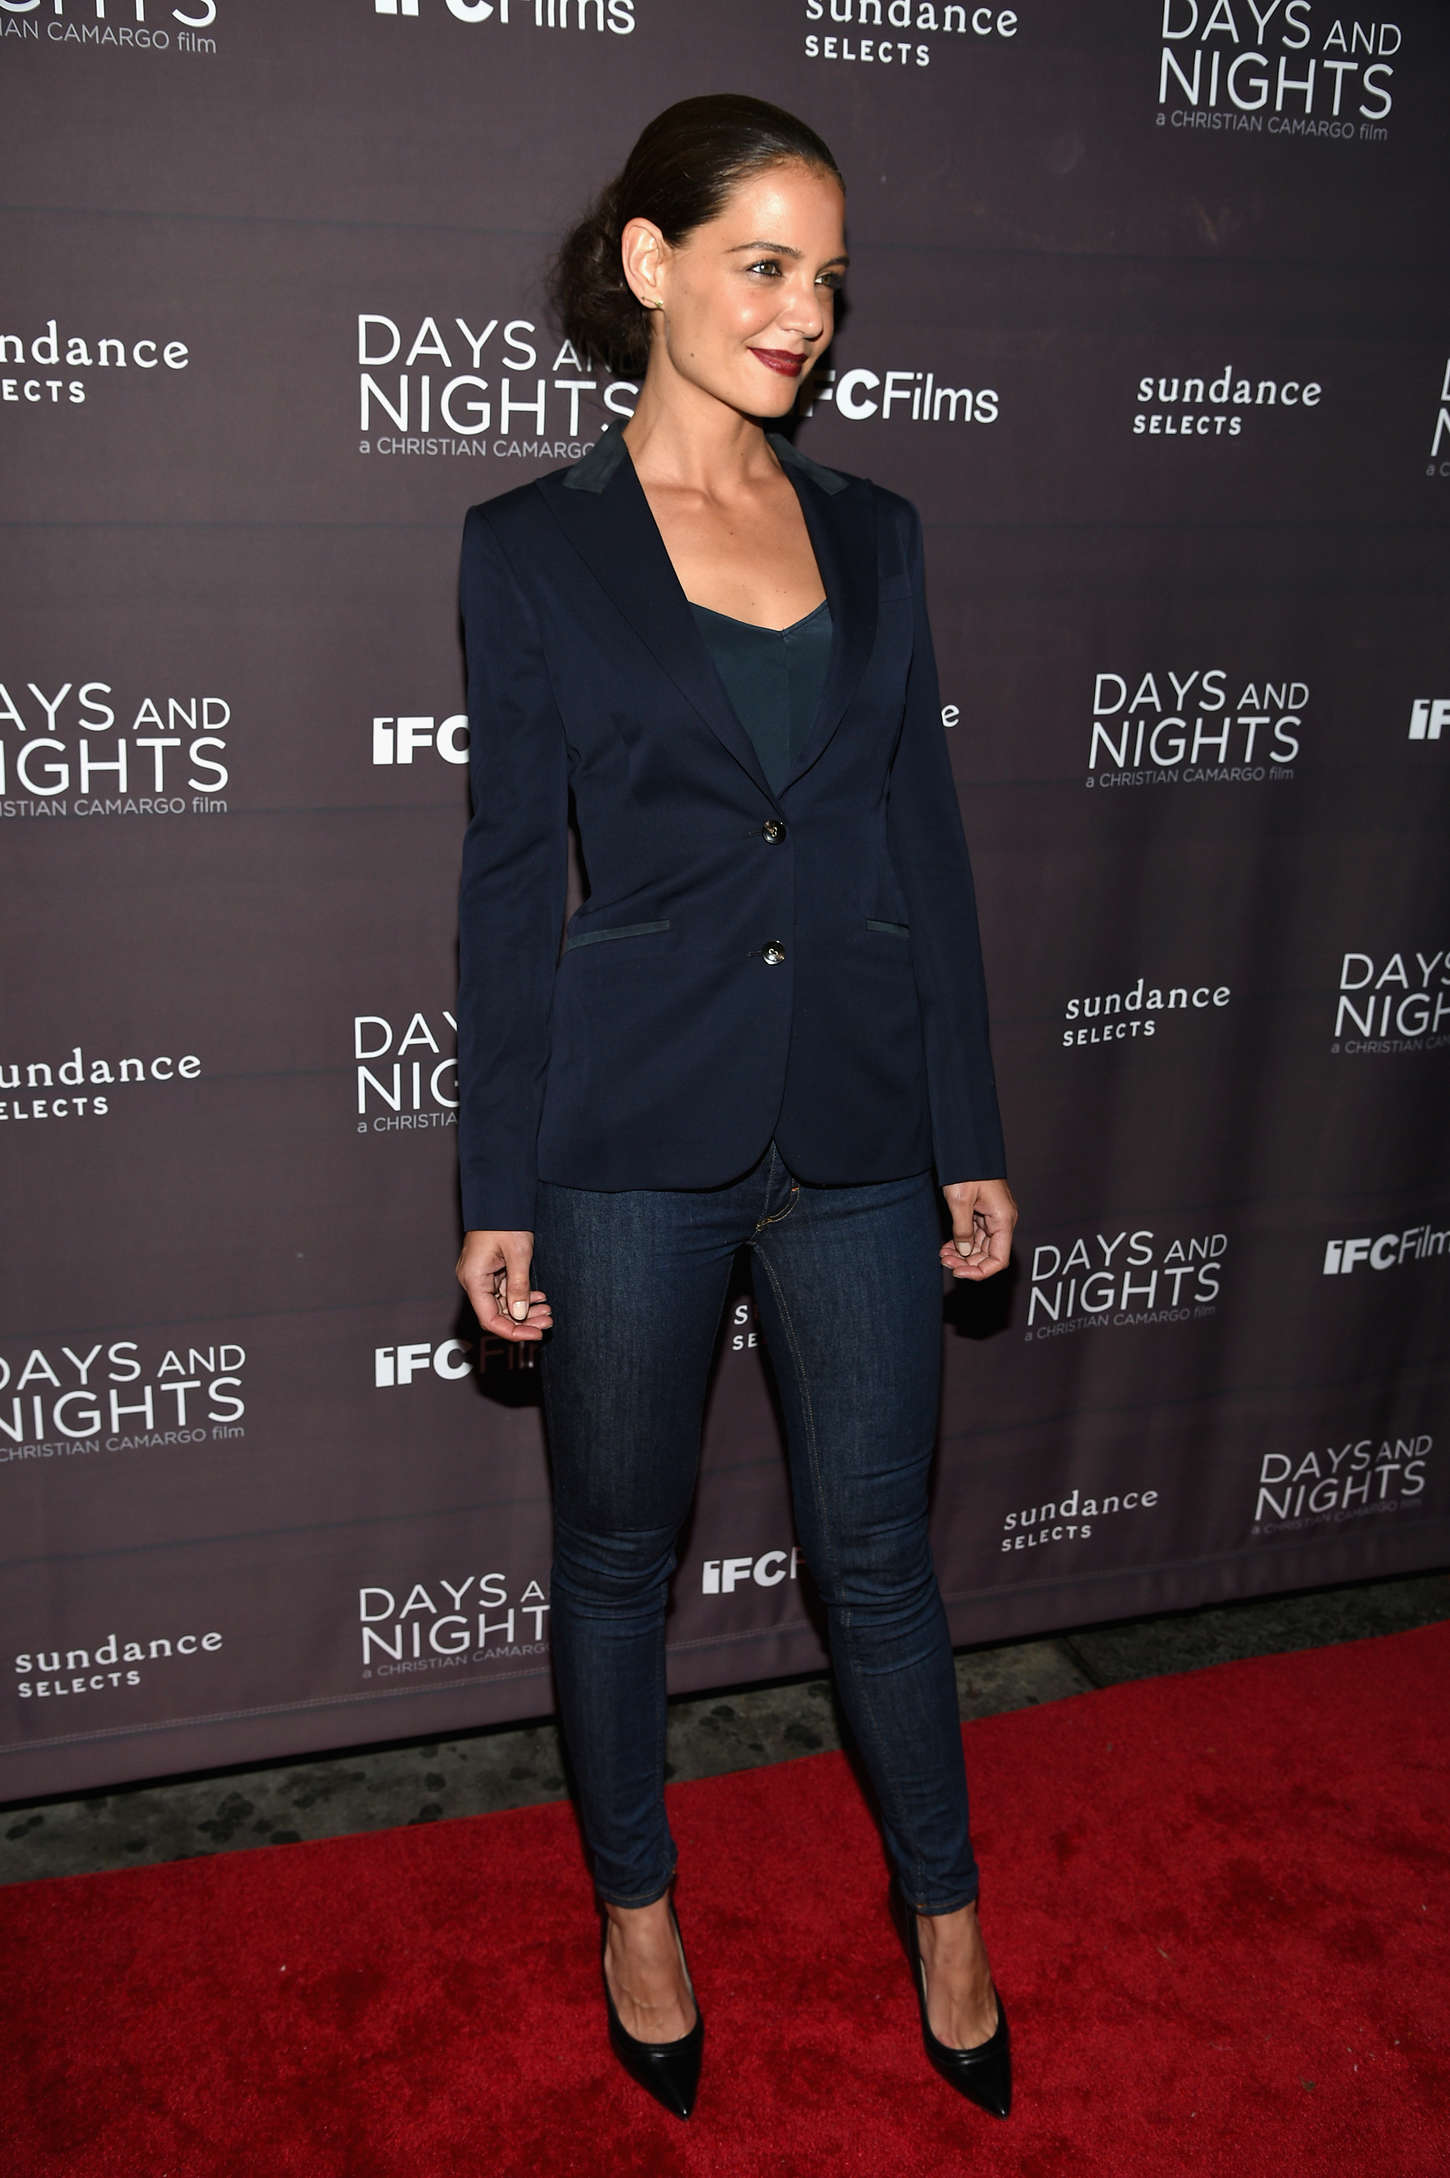 Katie Holmes 2014 : Katie Holmes: Days And Nights NY Premiere -10